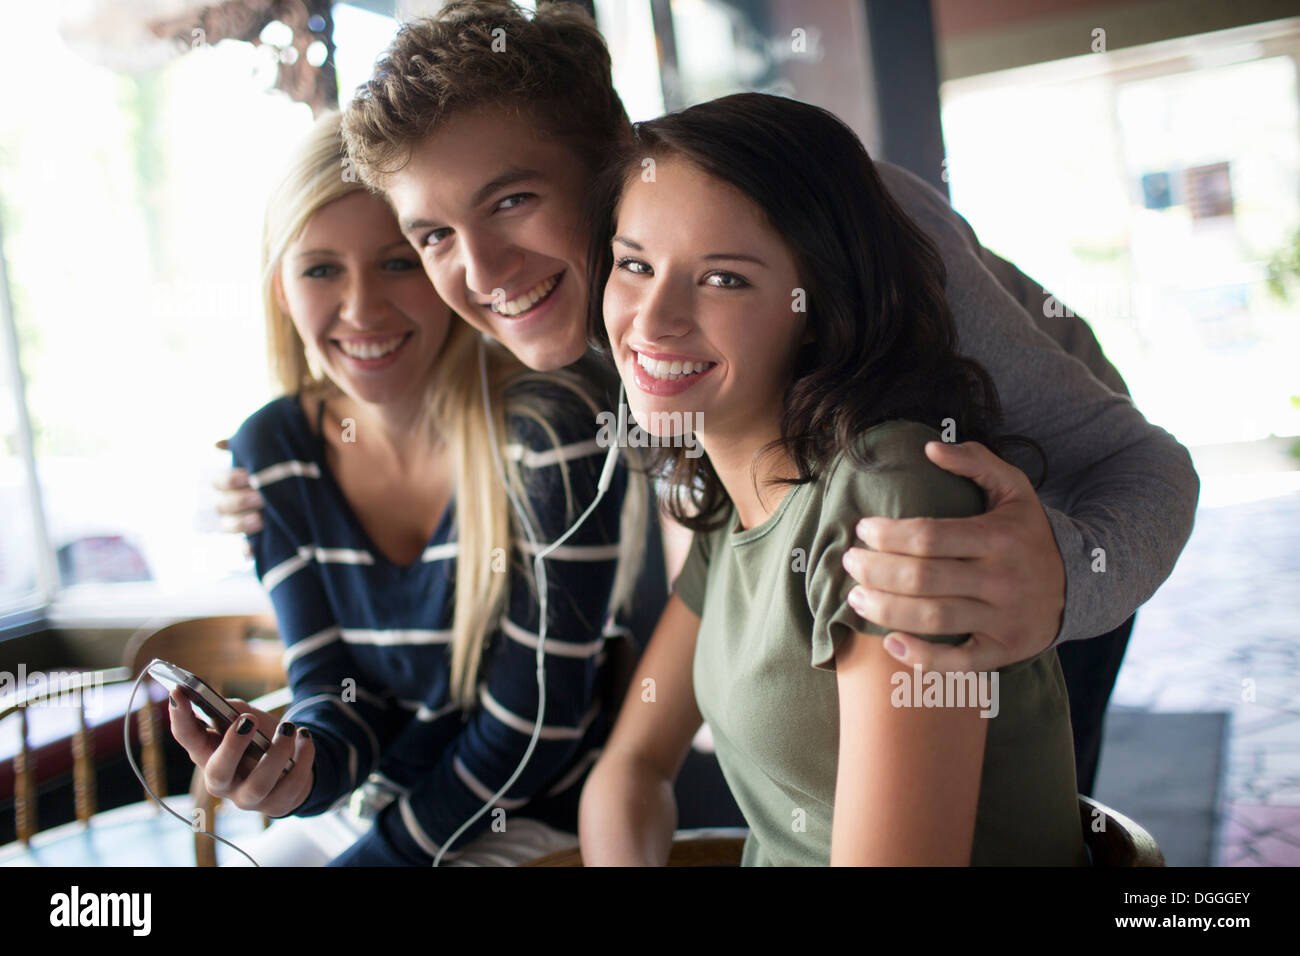 Group of friends sharing earphones in coffee house - Stock Image